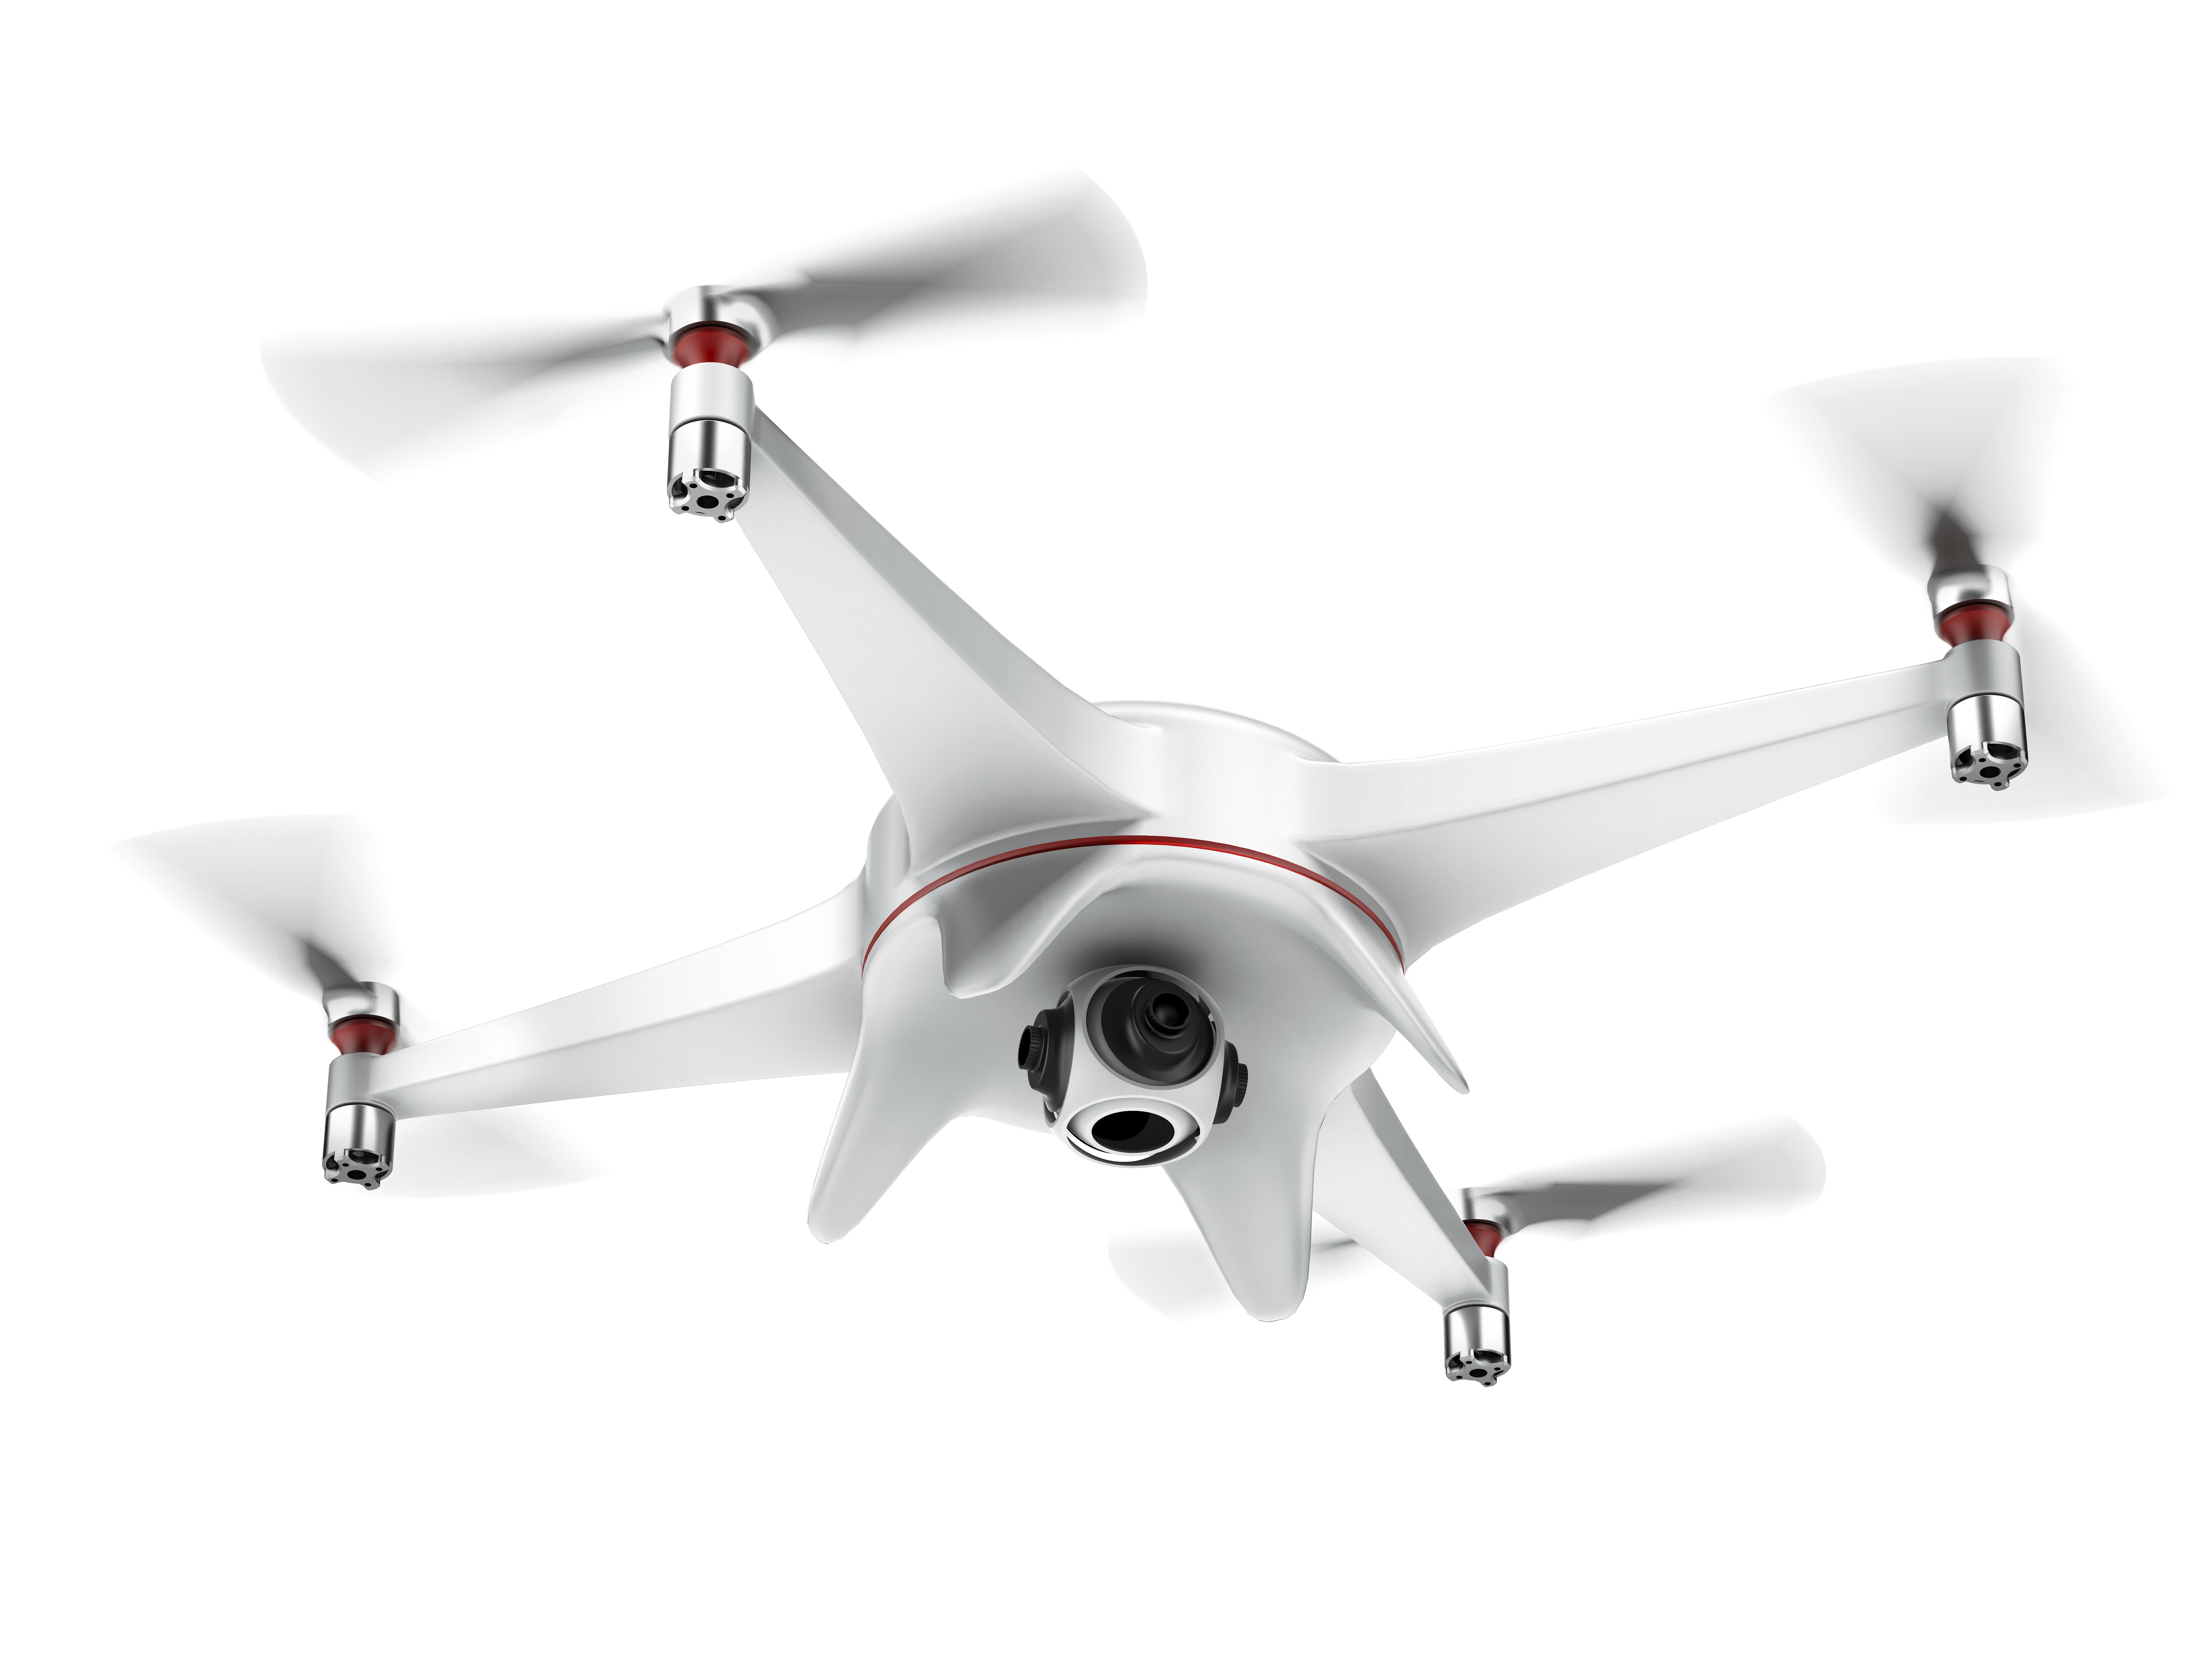 Drone 4 propeller white Png #47014.